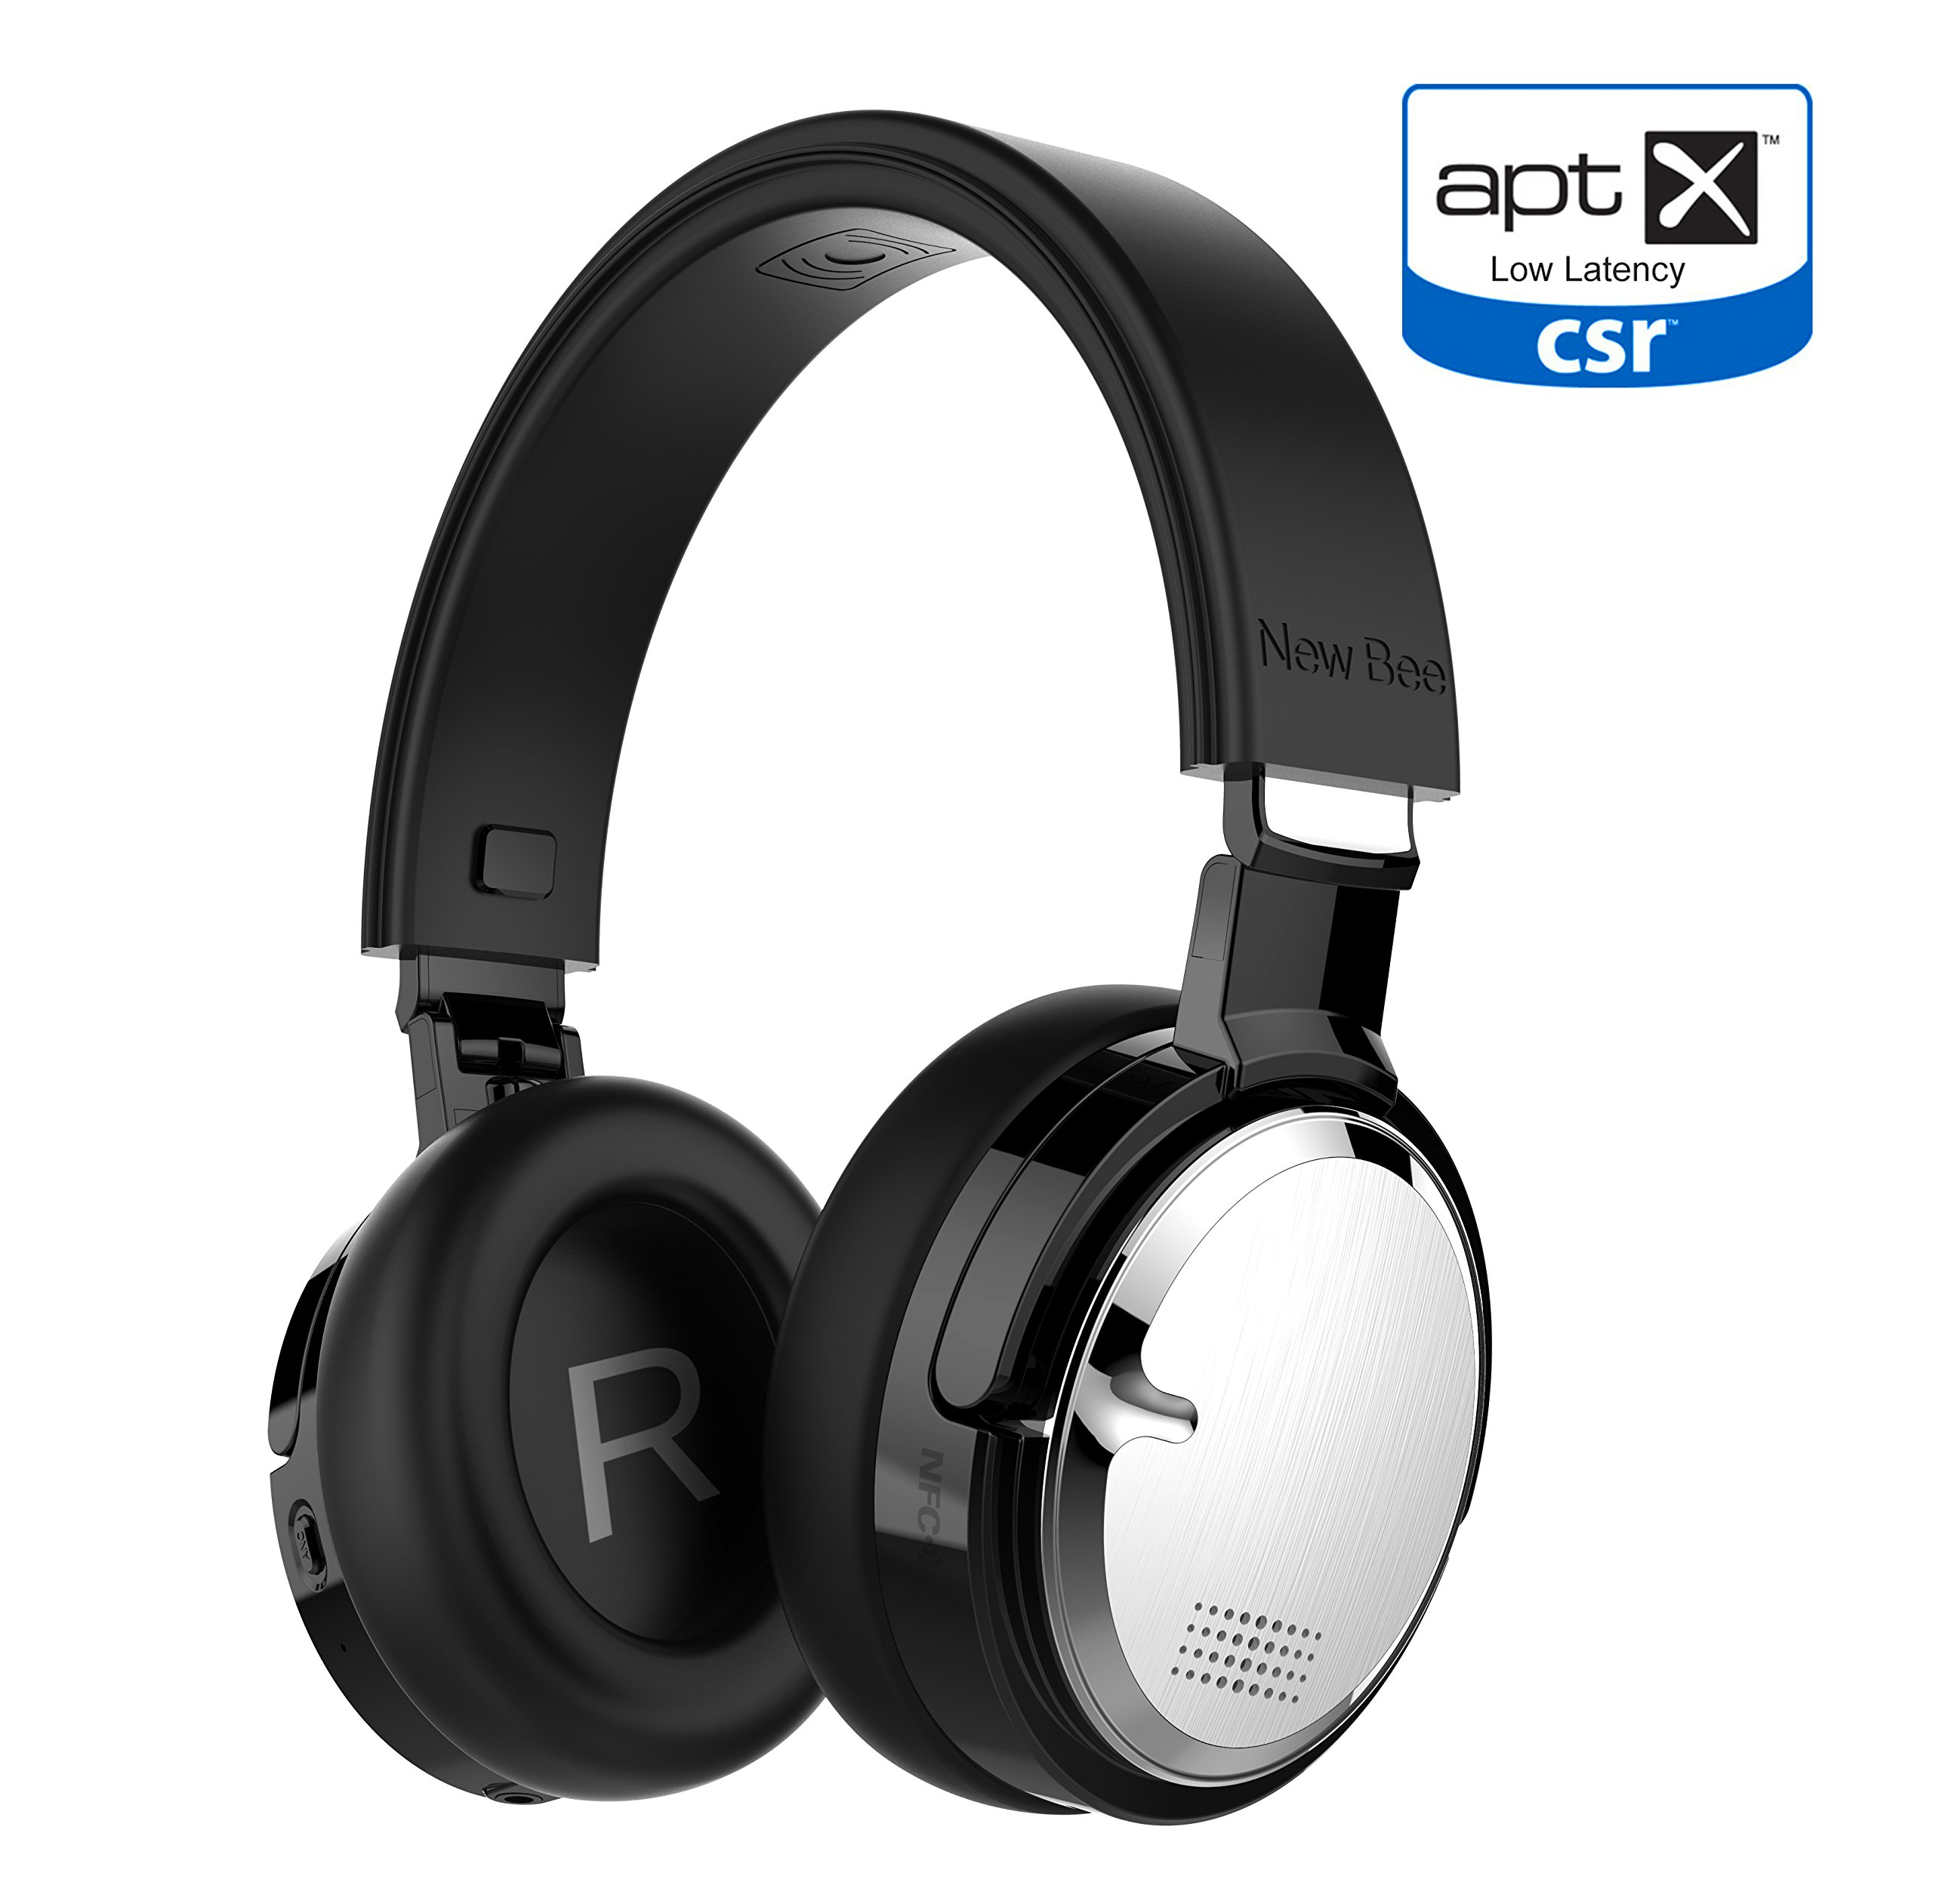 Wireless Charging Active Noise Cancelling Headphone New Bee Bluetooth 4.2 Wireless Headphones with aptX Low Latency Microphone Deep Bass HiFi Stereo Over Ear 60H Playtime for Travel/TV/Computer/Iphone by New bee